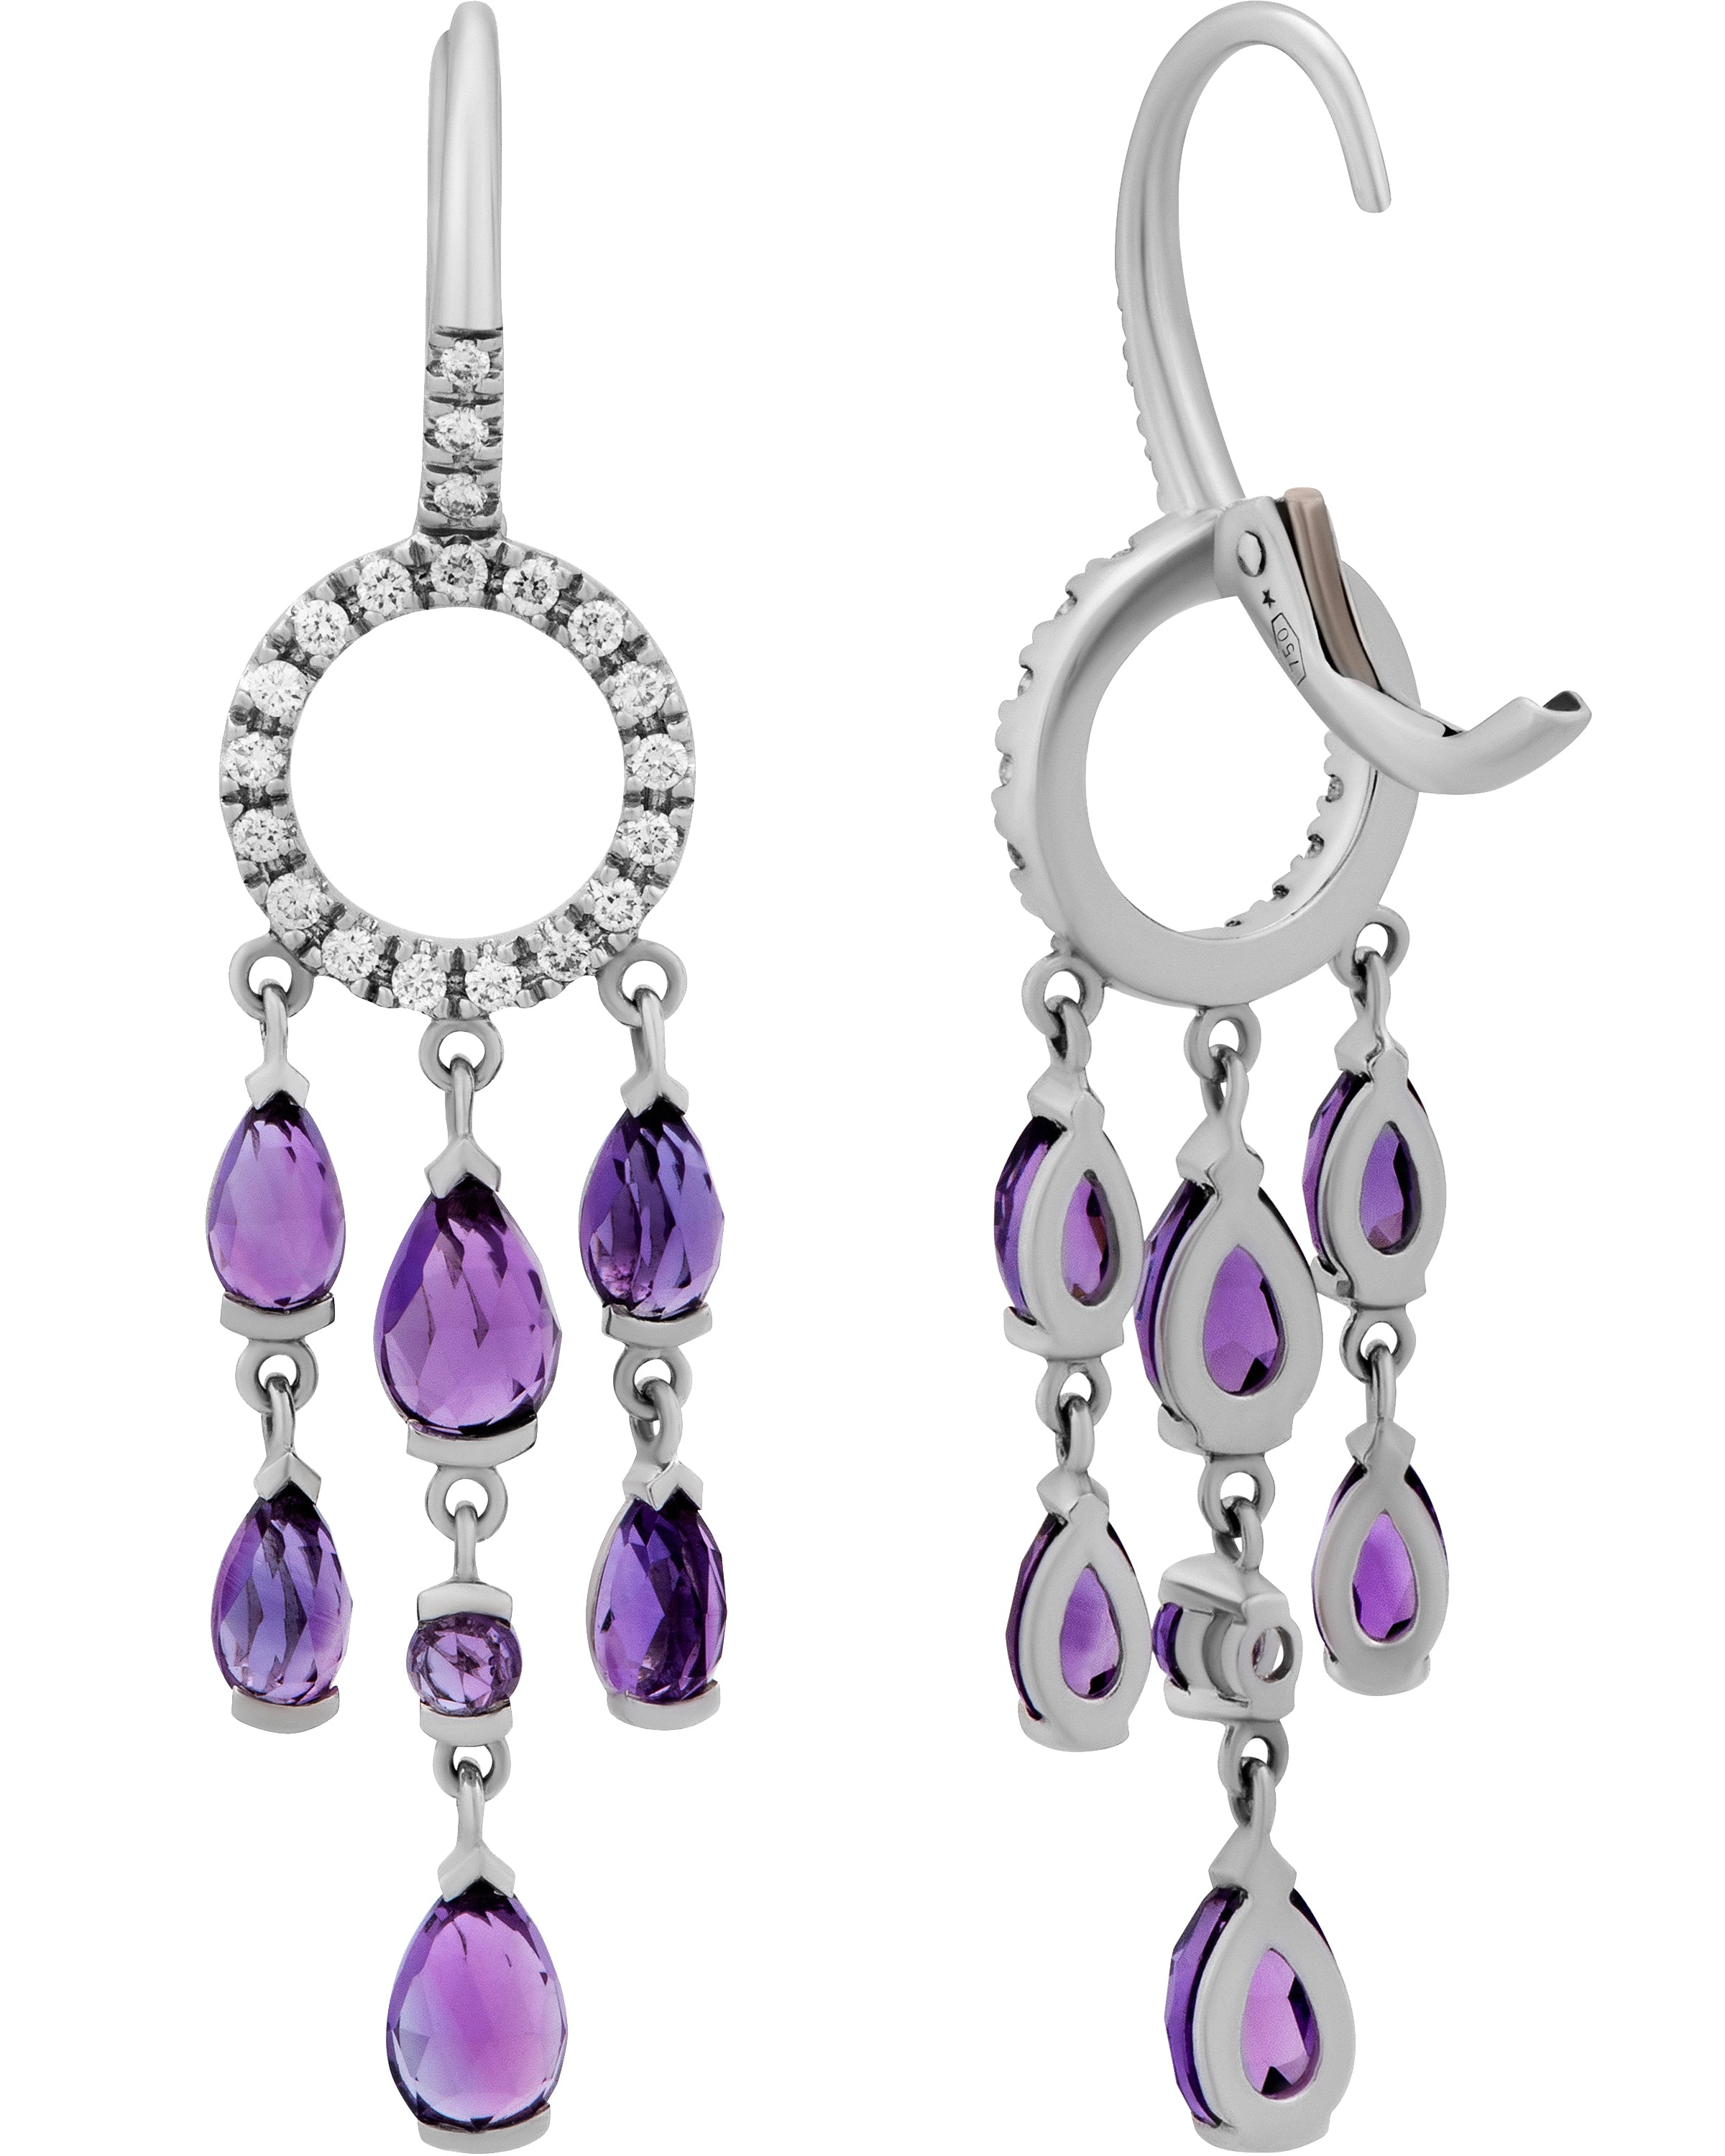 Mimi Milano 18k White Gold, Diamonds and Amethyst Earrings O381B8AB